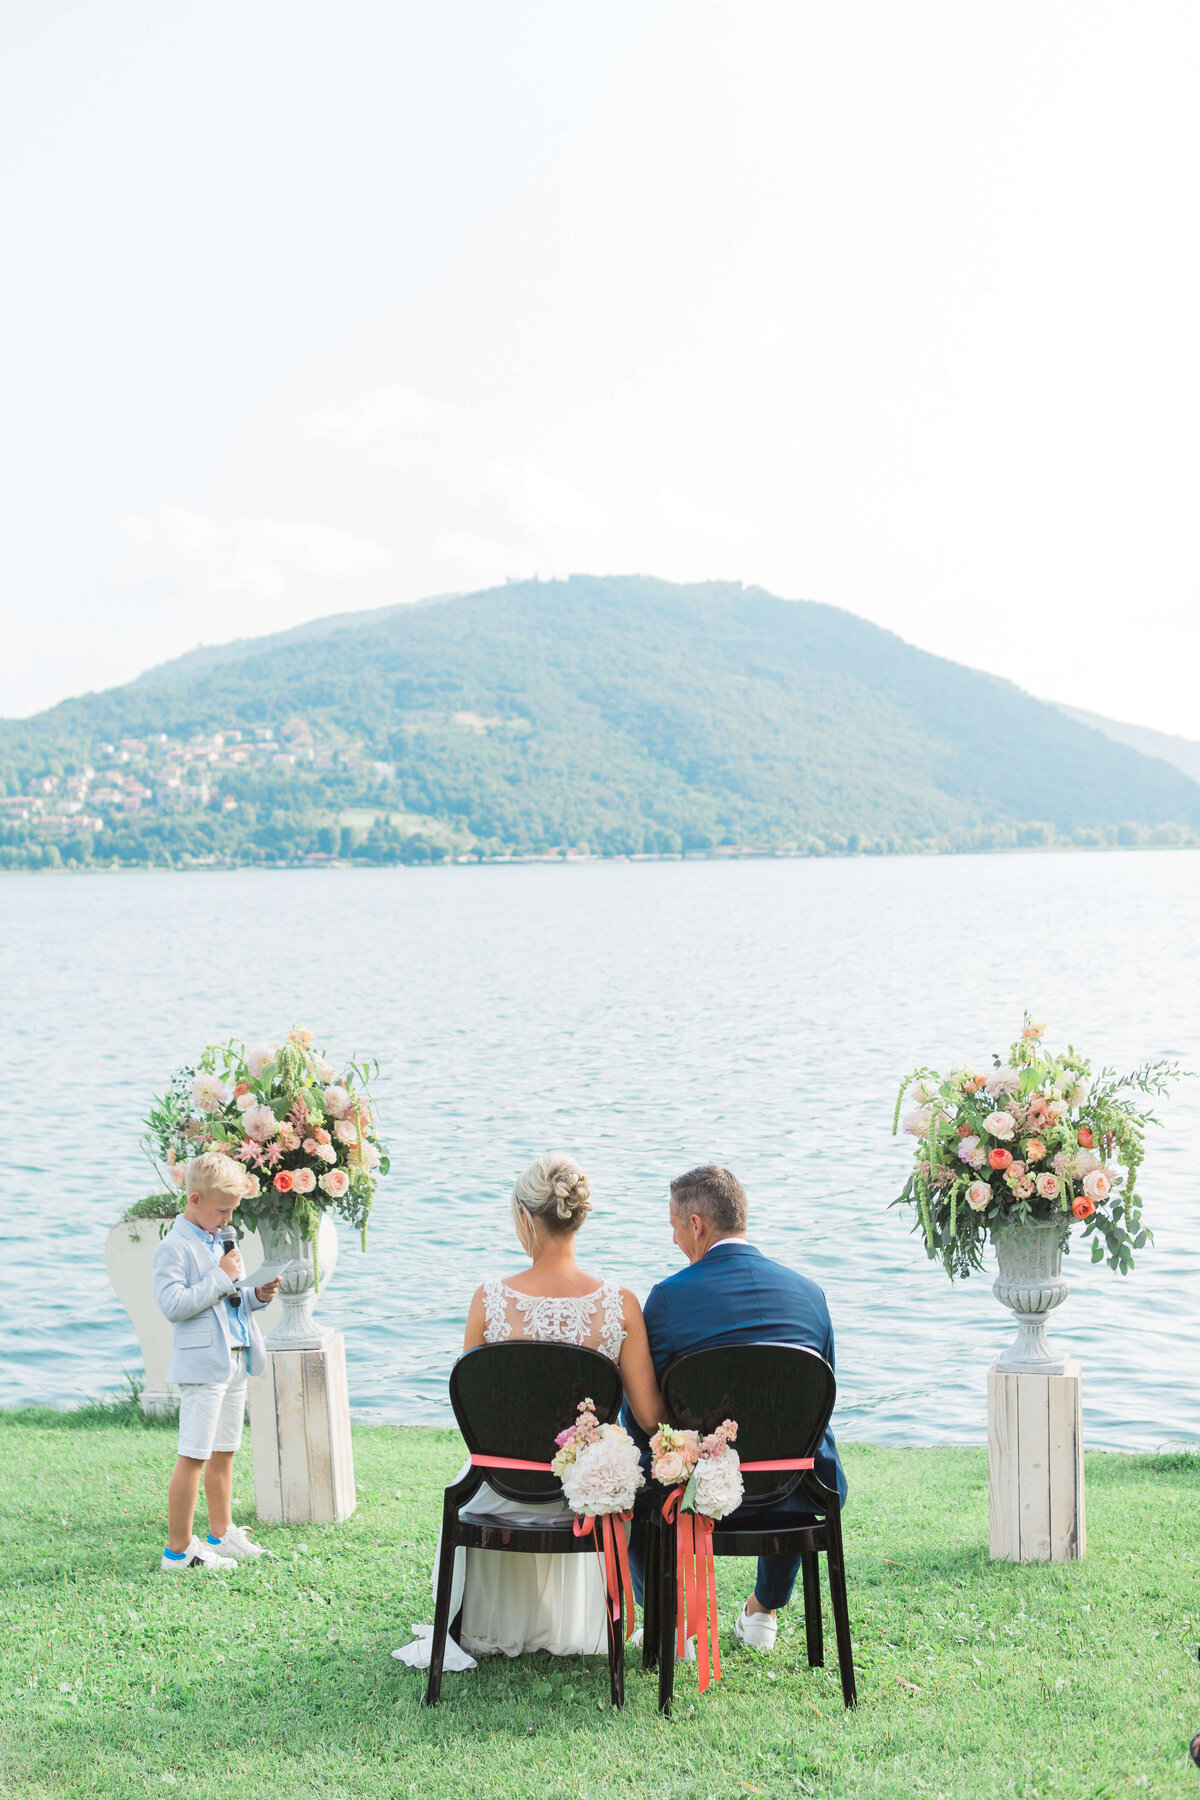 Wedding K&D - Lago d'Iseo - Italy 2018 33-1